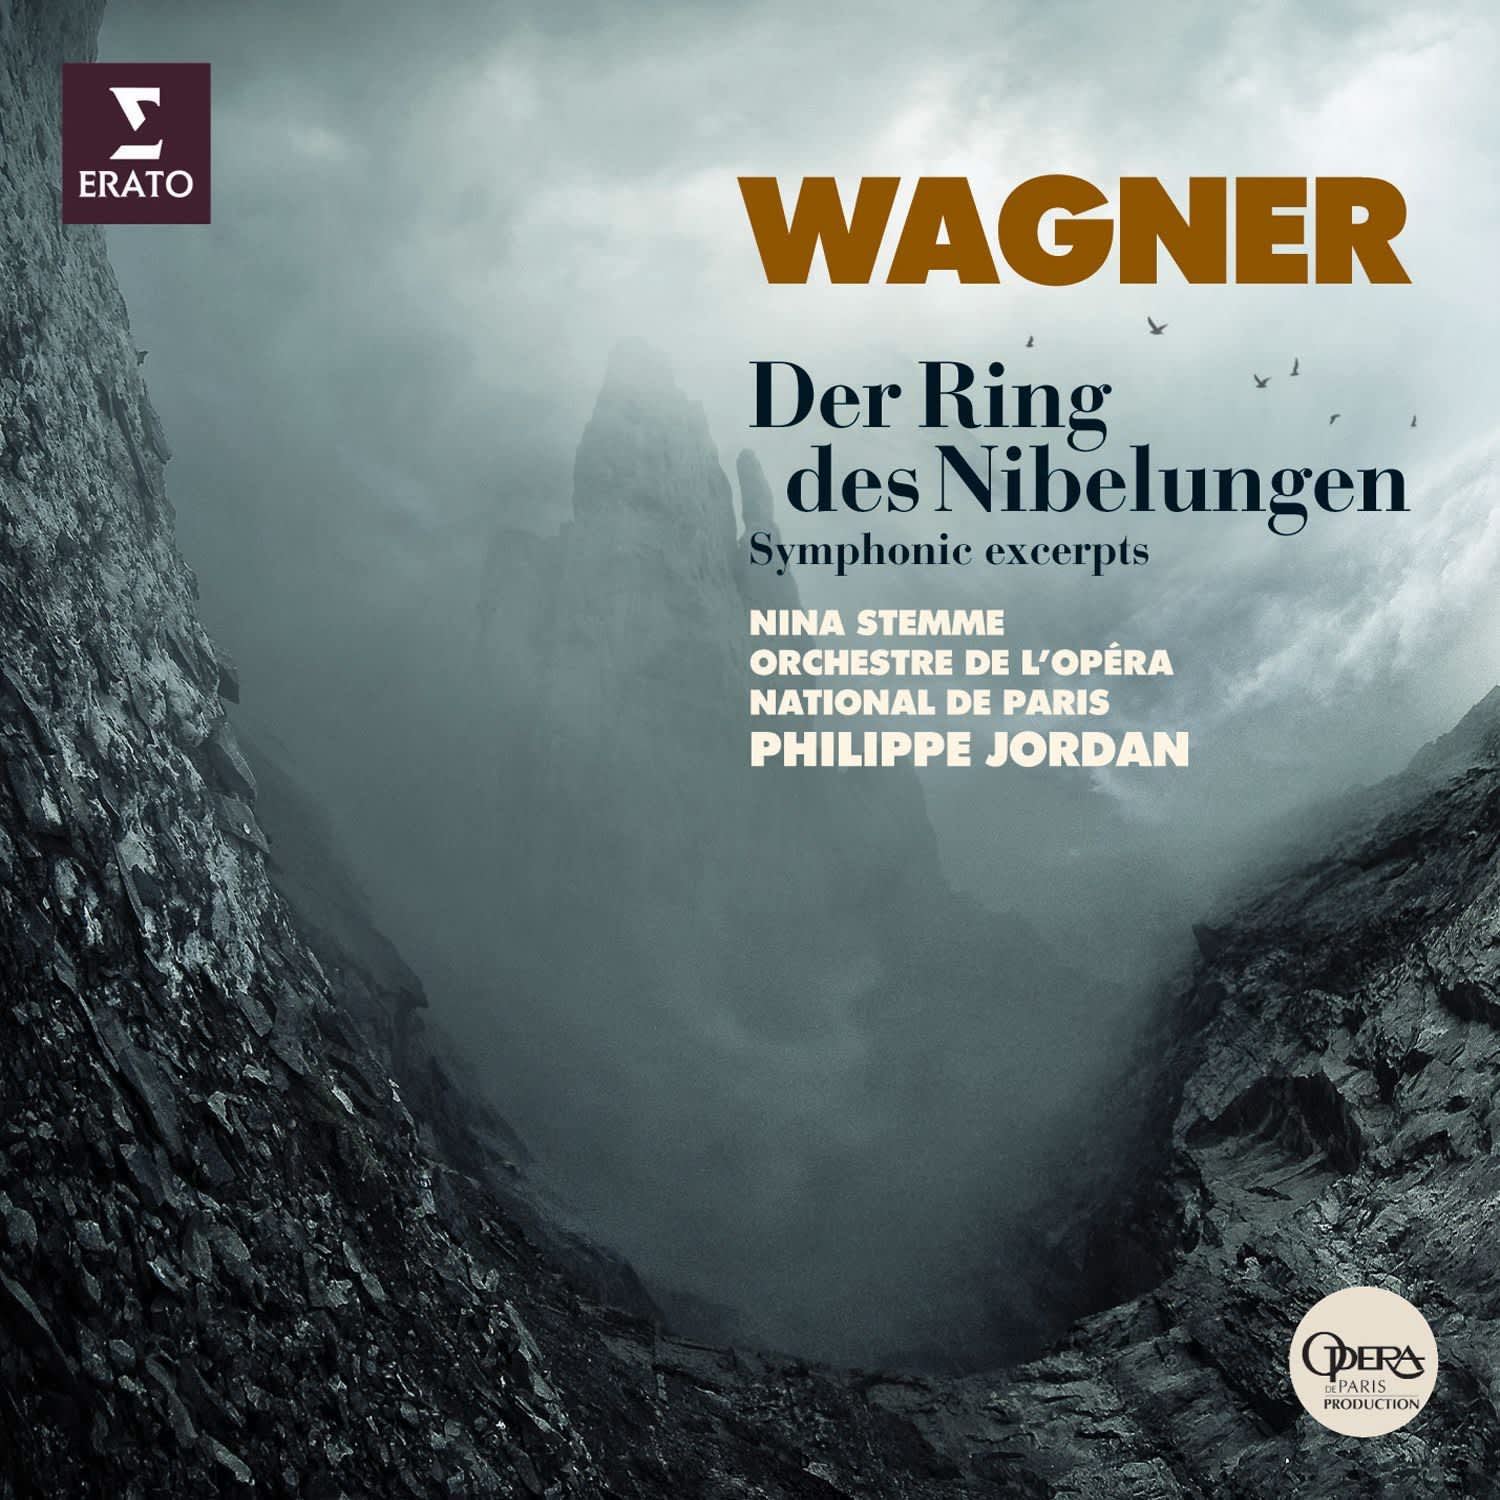 Photo No.1 of Richard Wagner: Symphonic Excerpts from